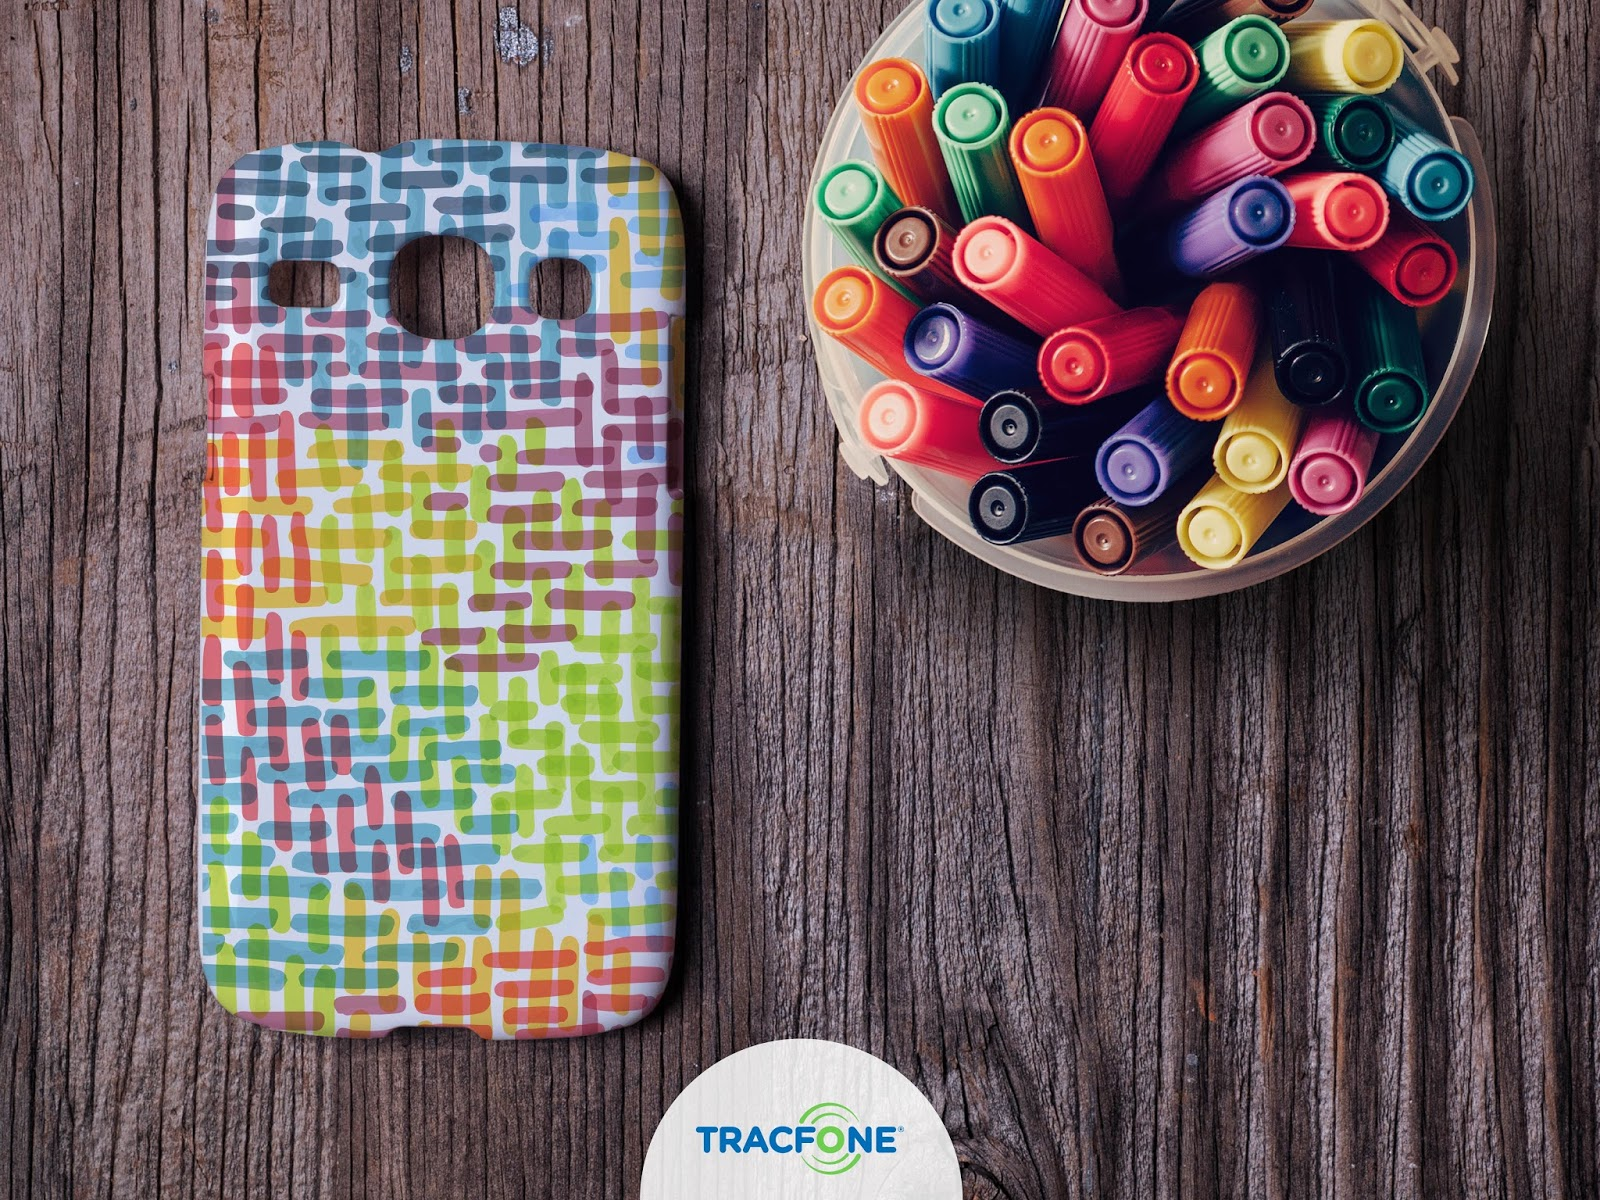 tracfone blog tracfone tips decorate your phone case